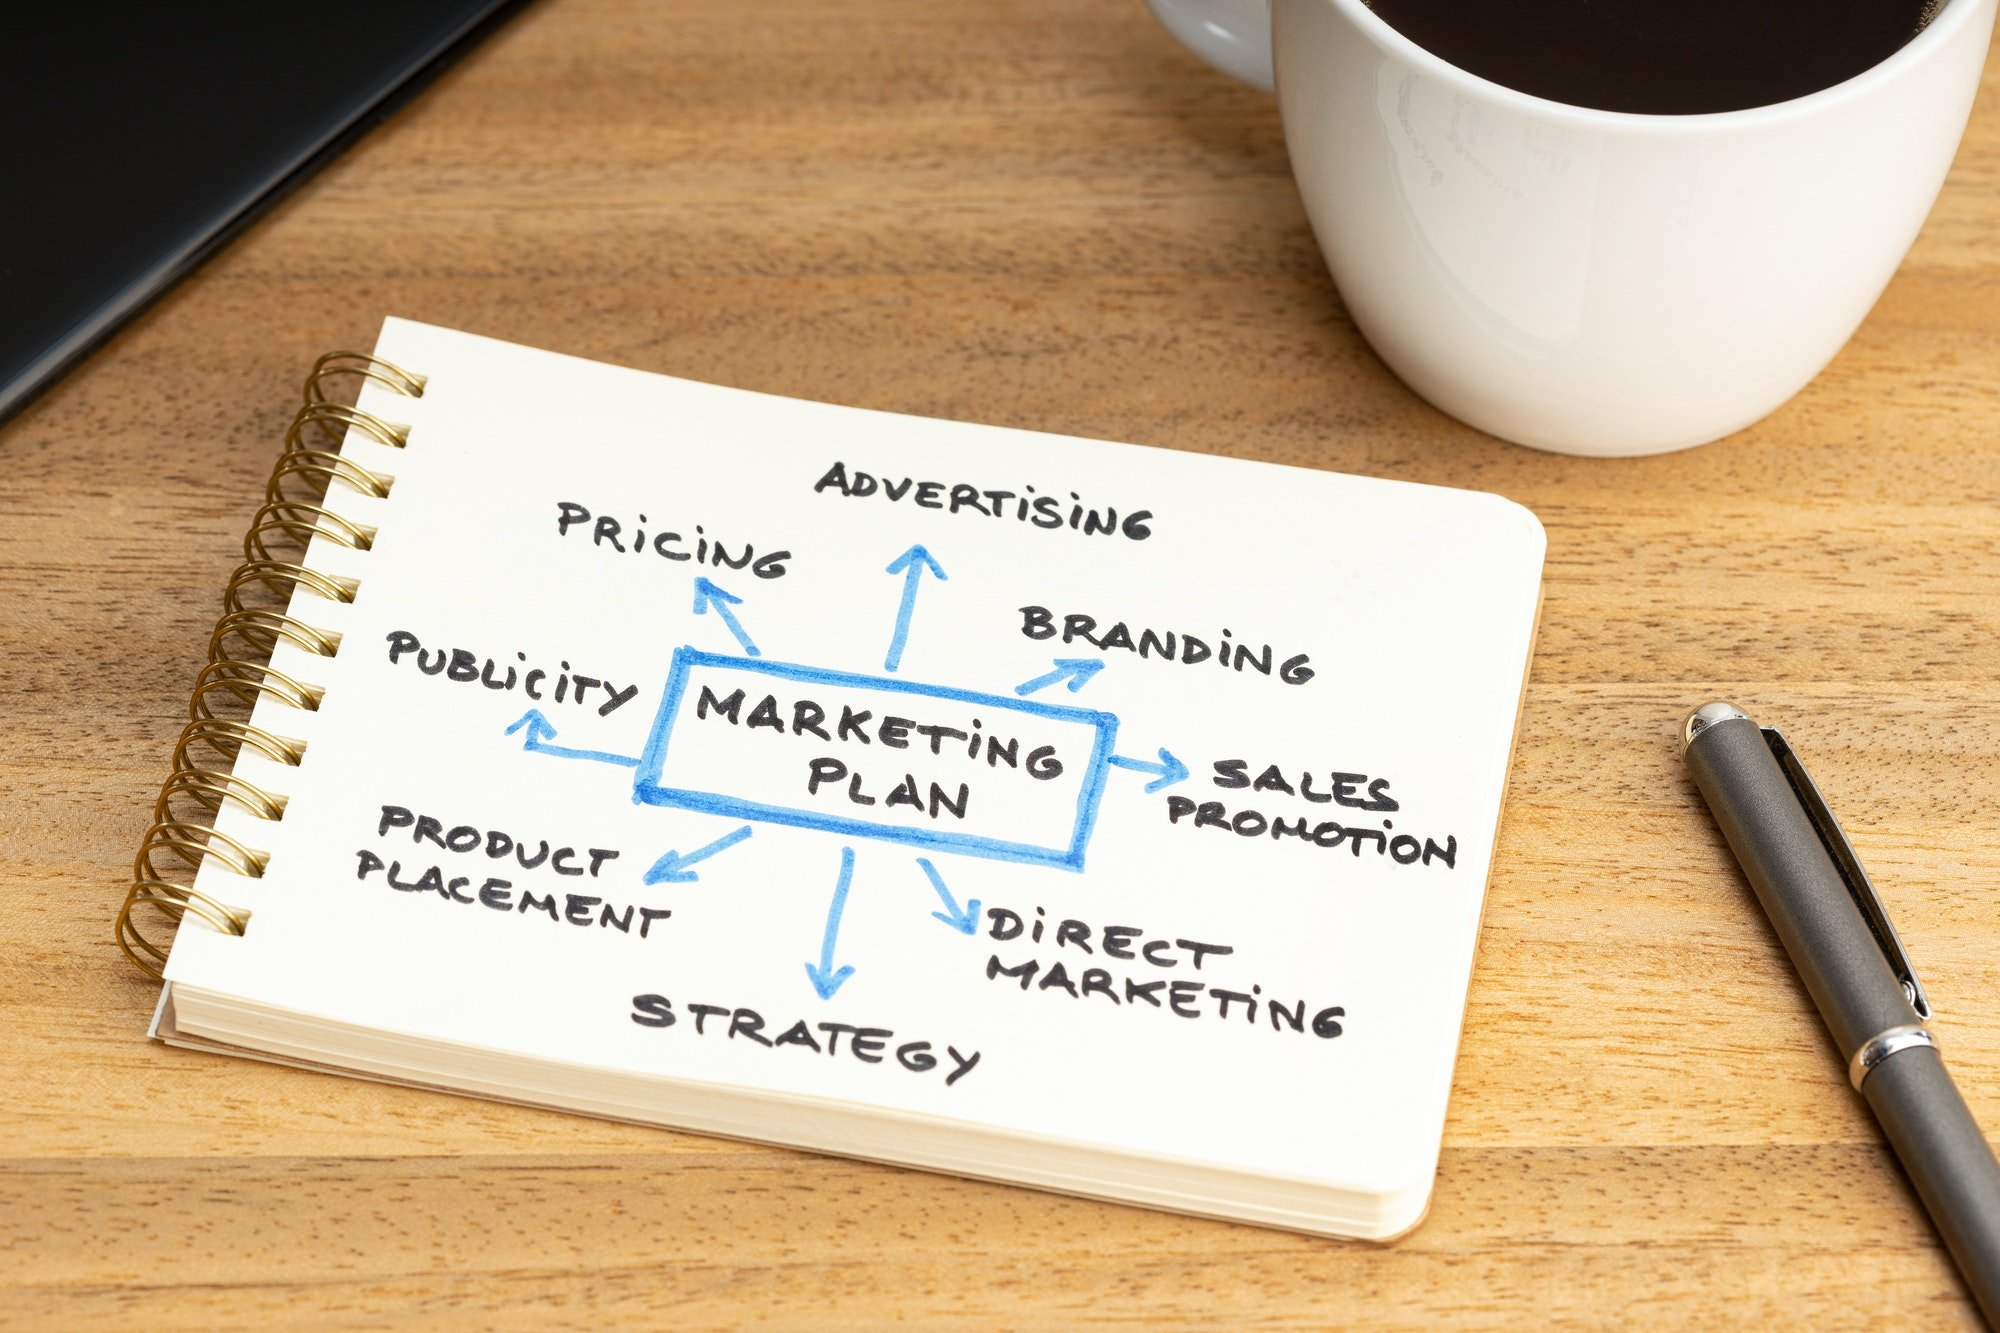 Marketing plan graph on notepad on wooden desk